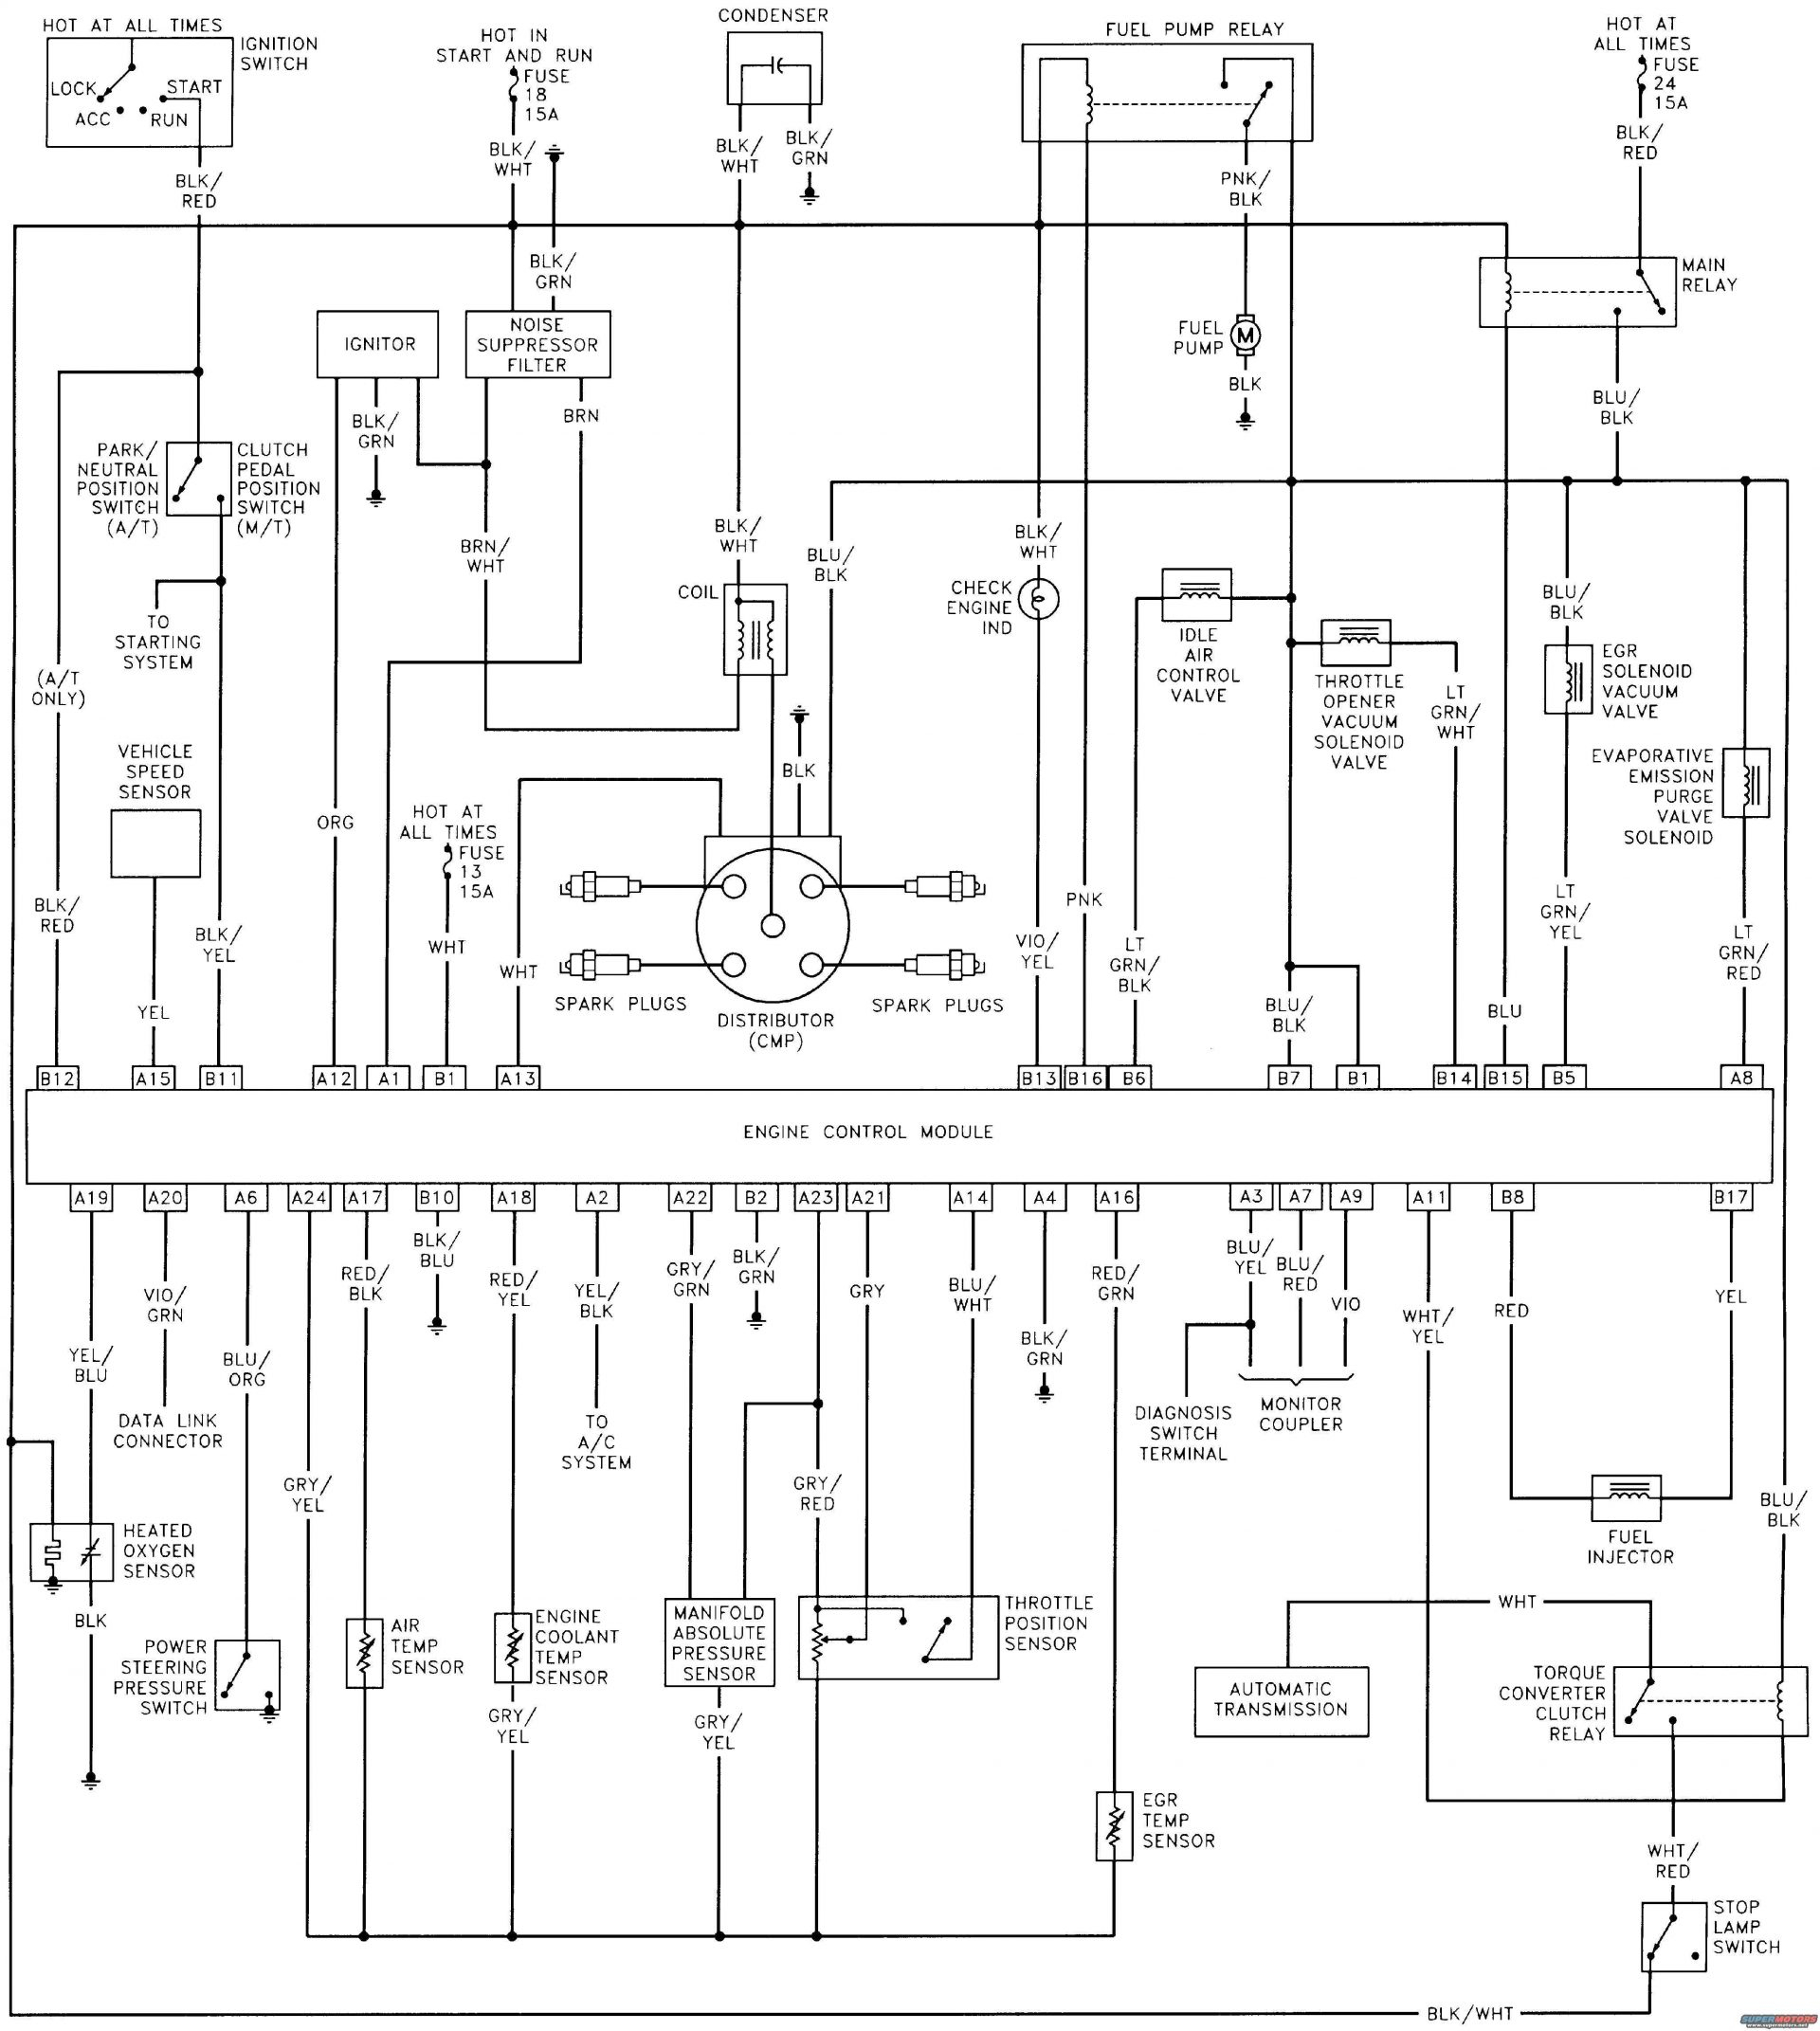 wiring diagram yale forklift data circuit diagram u2022 rh befunctional co